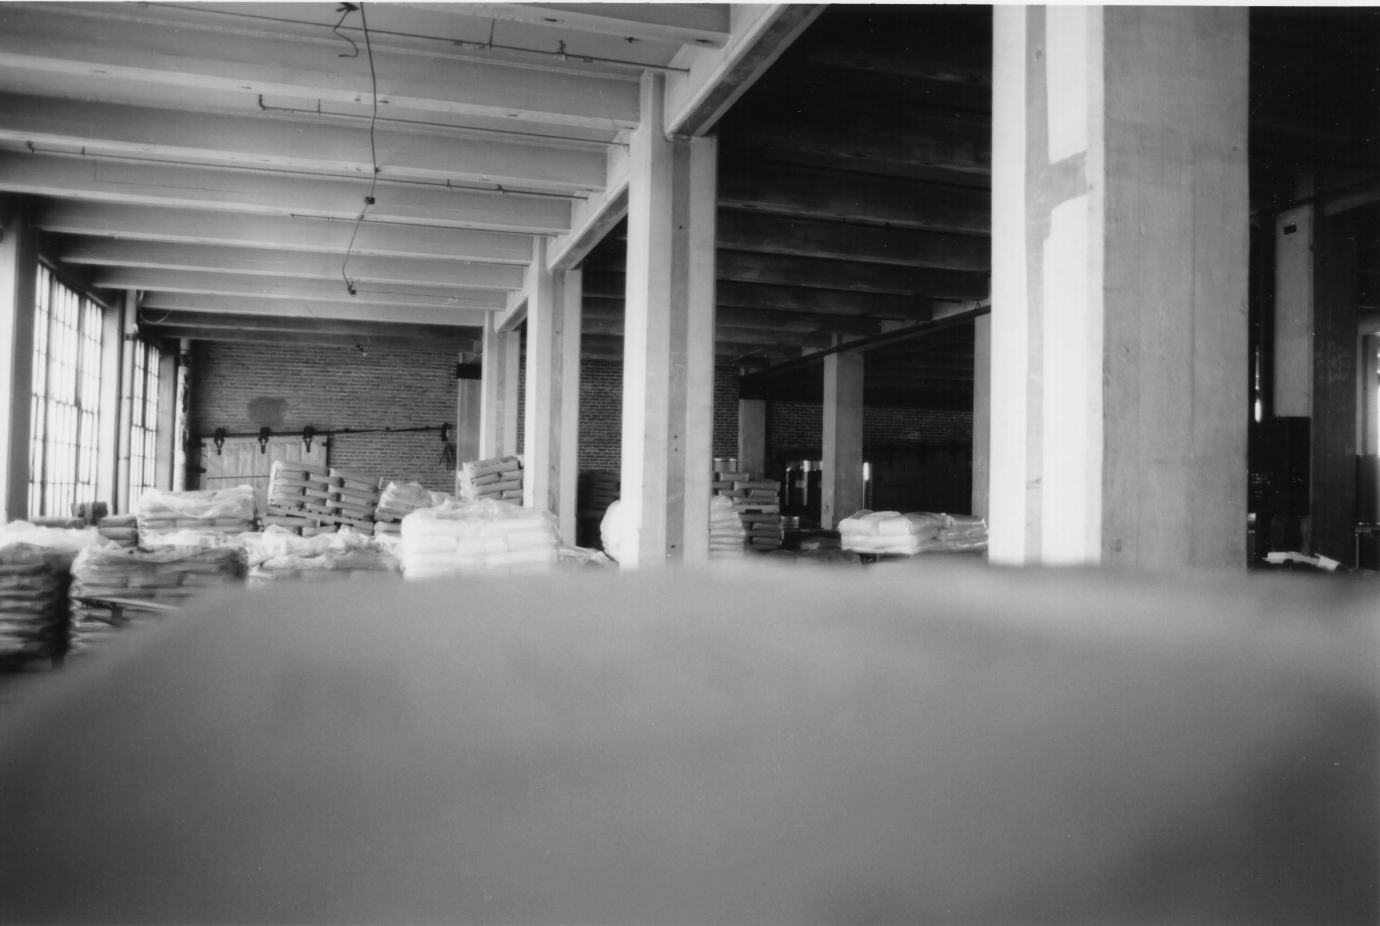 Inside the former factory in 1998